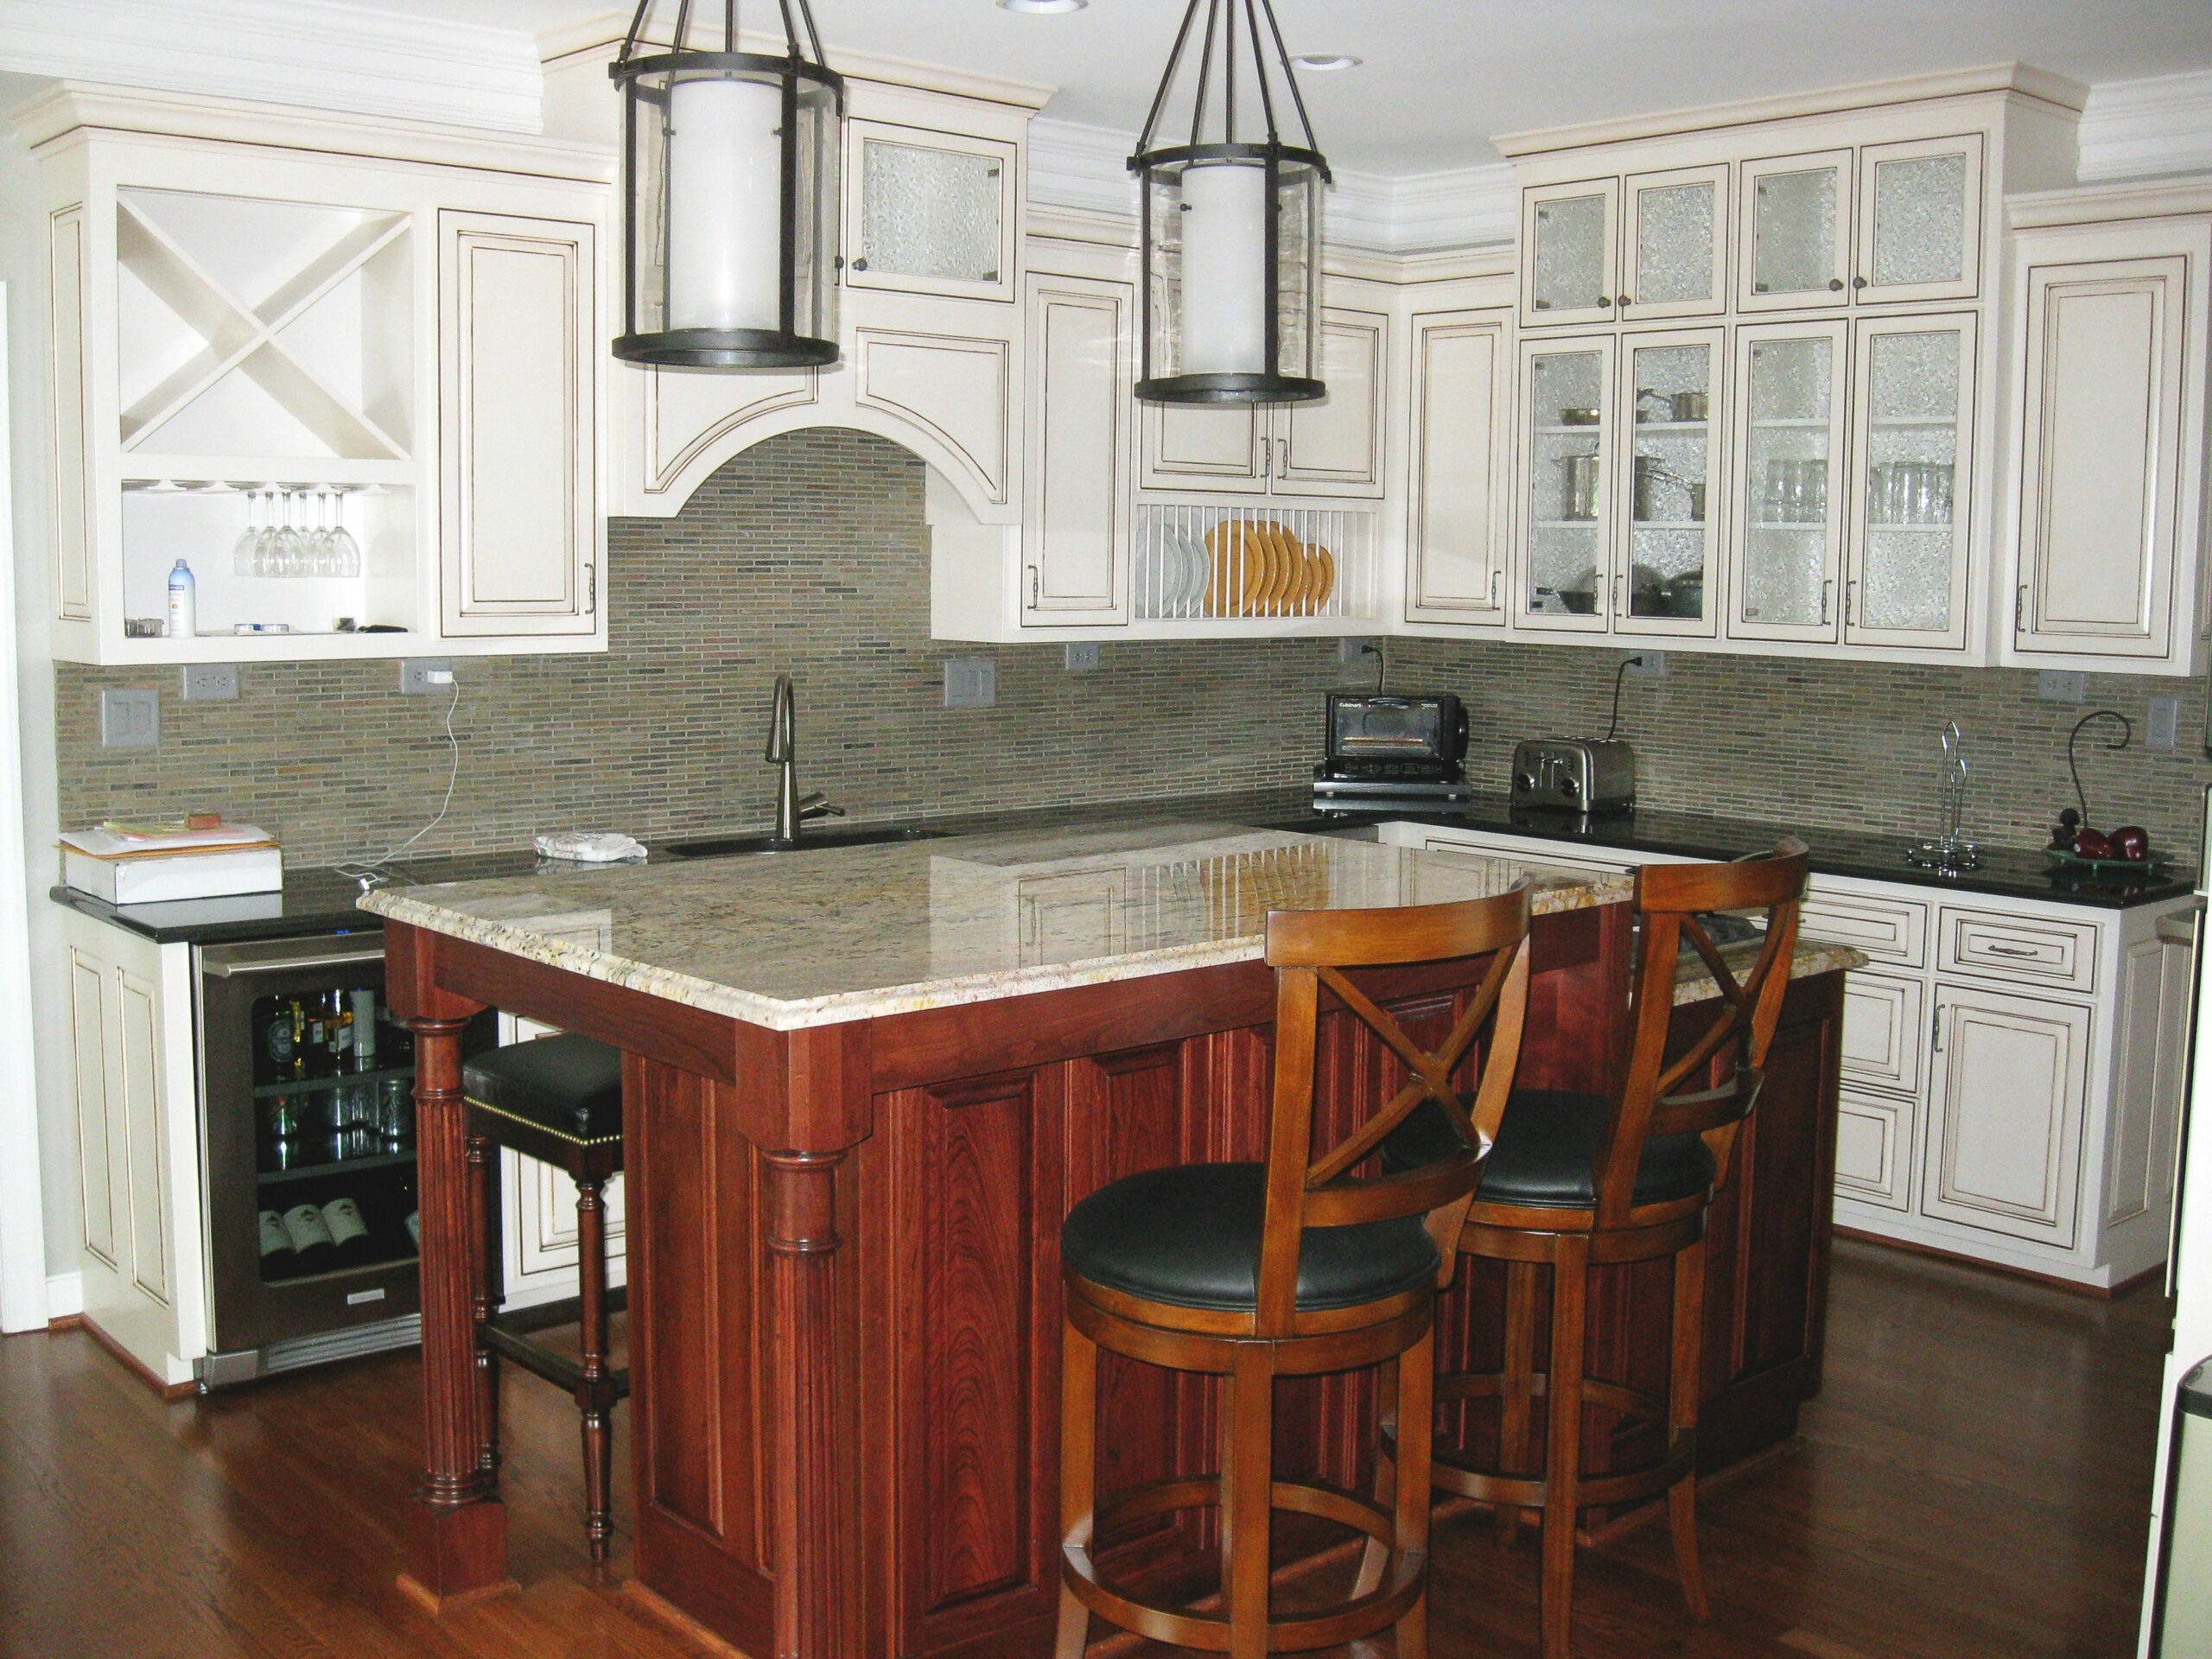 White Transitional Kitchen Backsplash